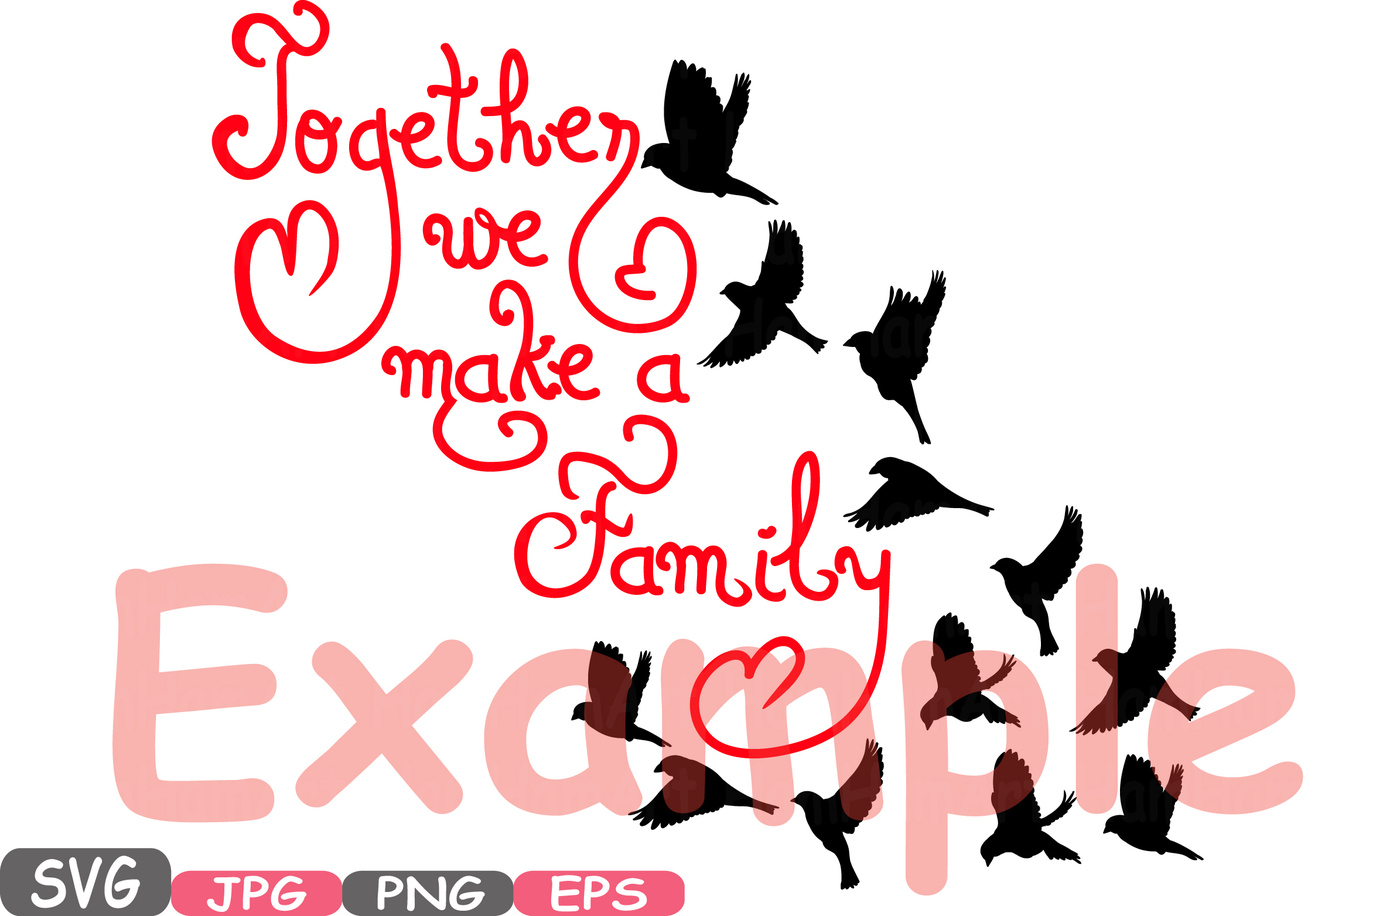 Brother clipart word. Together we make a